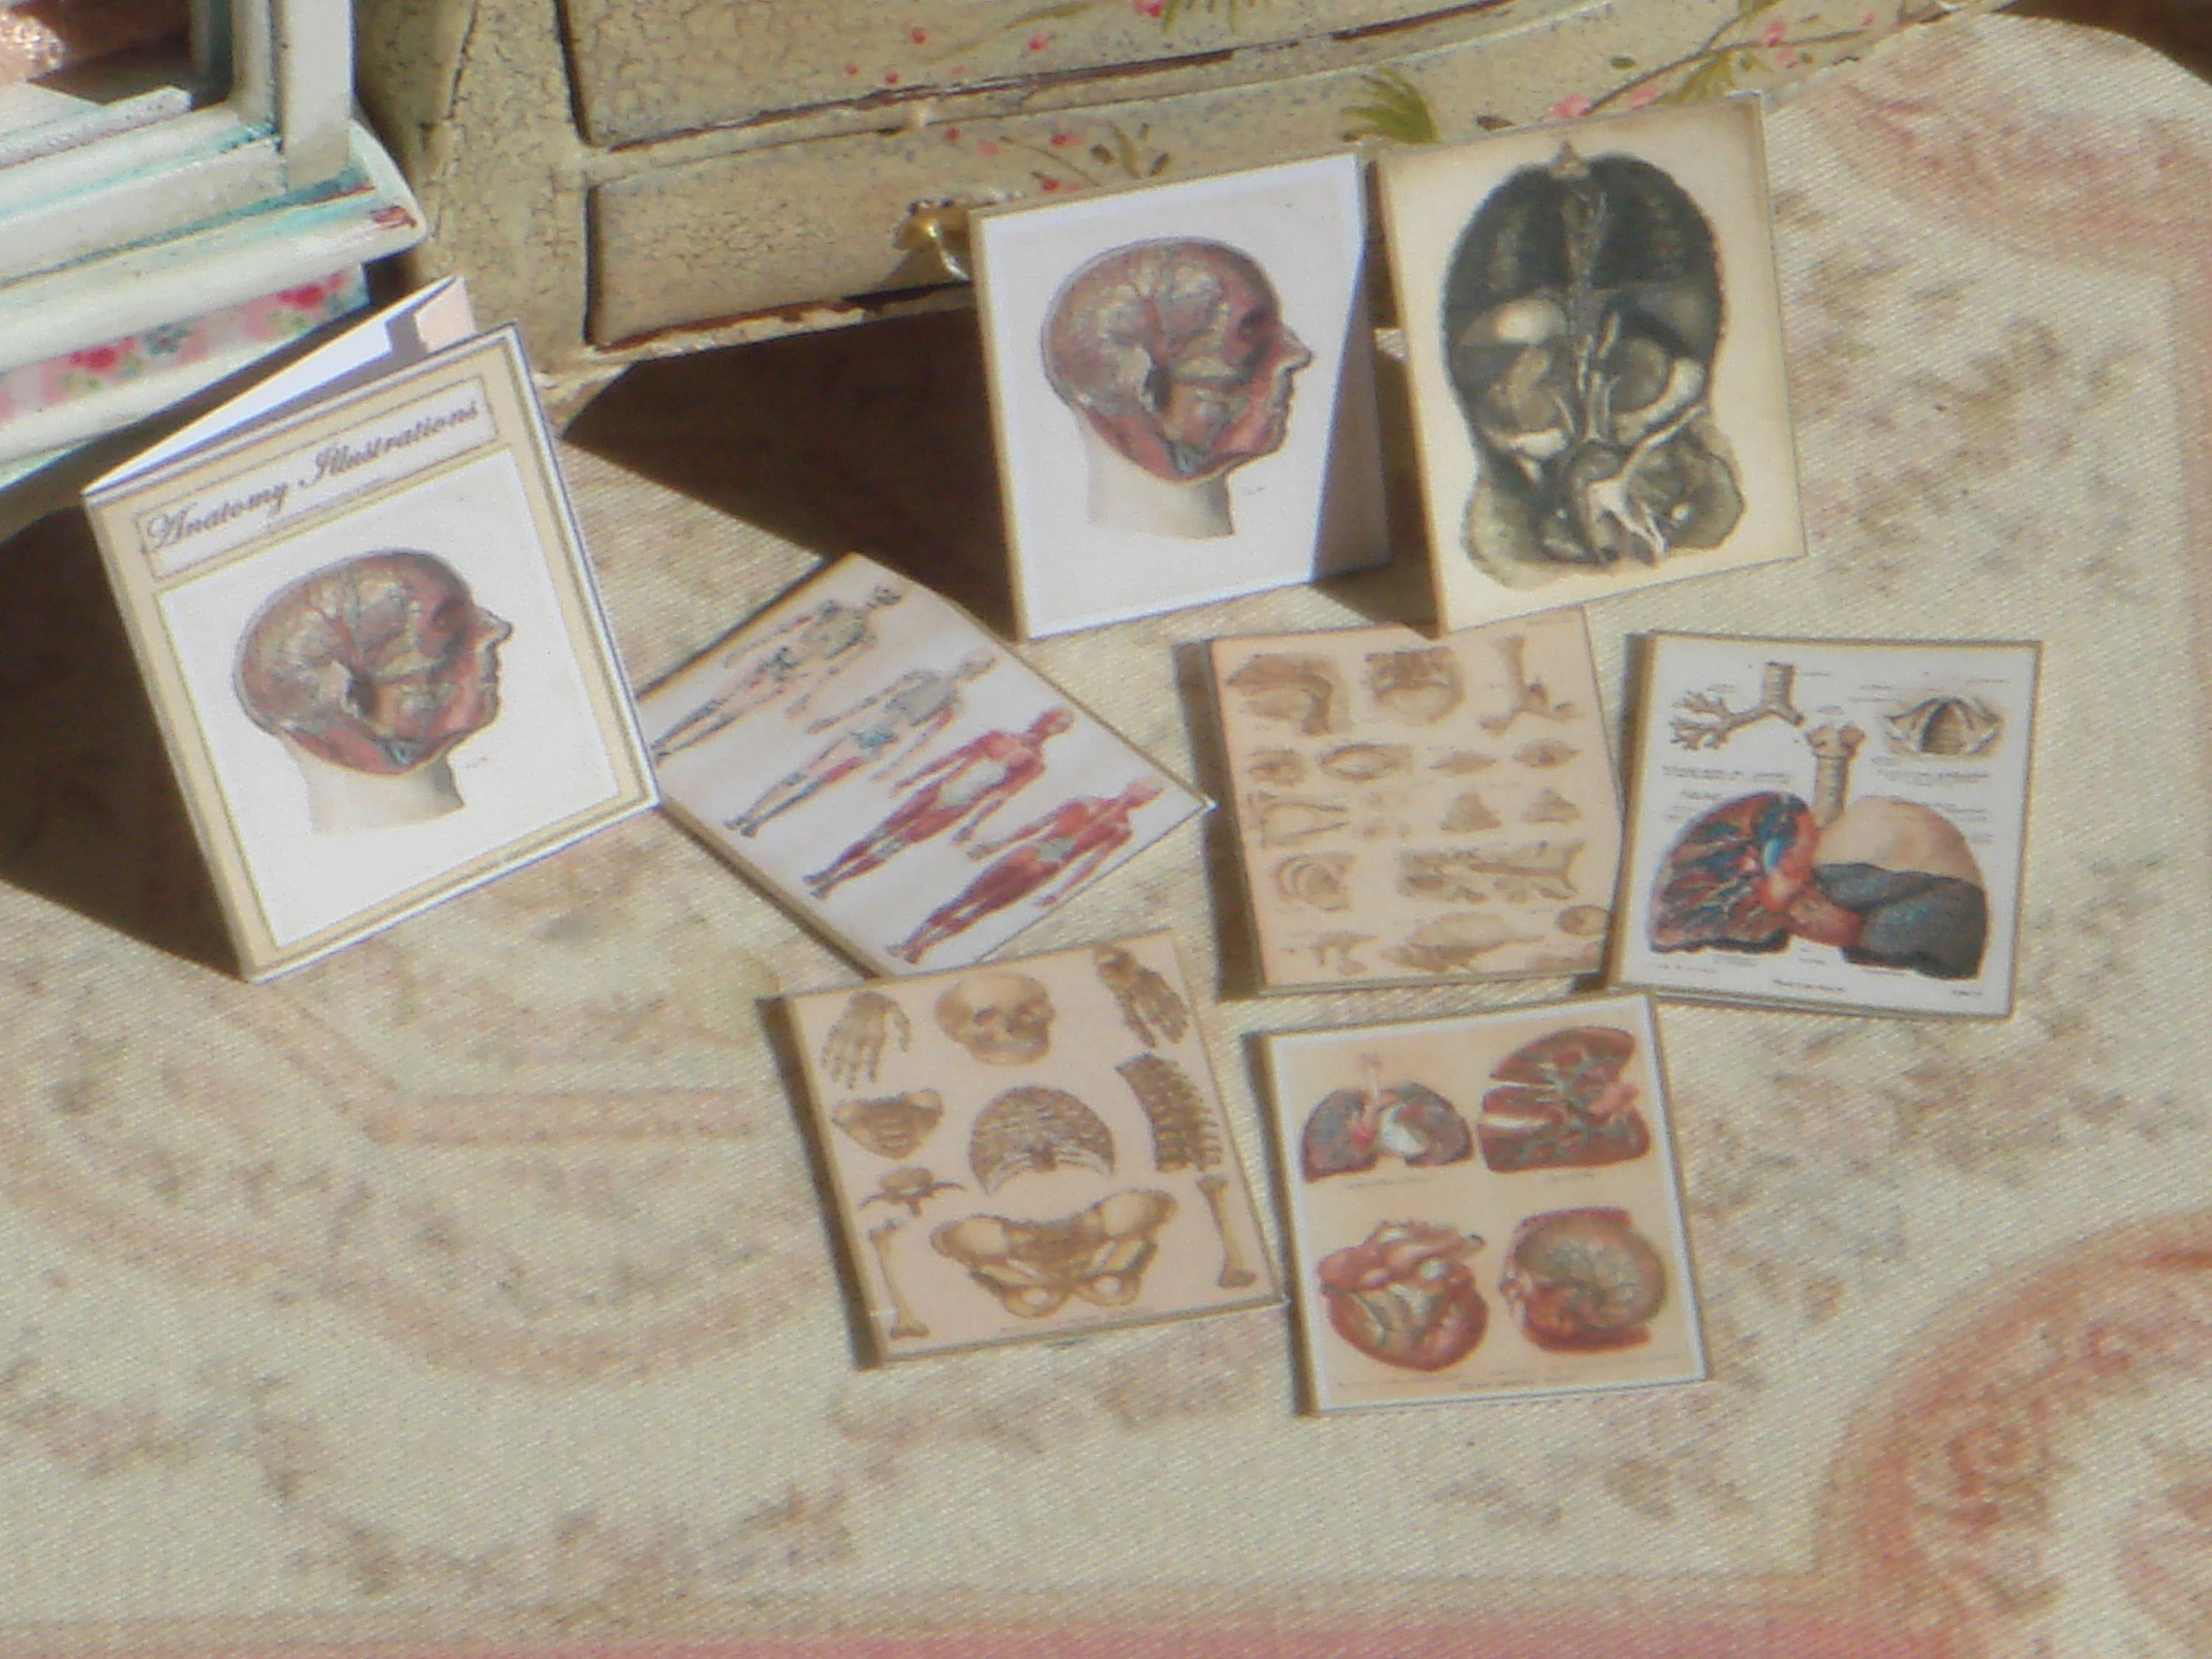 Dollhouse Vintage Anatomy folder with illustrations. 1:12 Miniature Medical illustations miniature folder #miniaturemedical